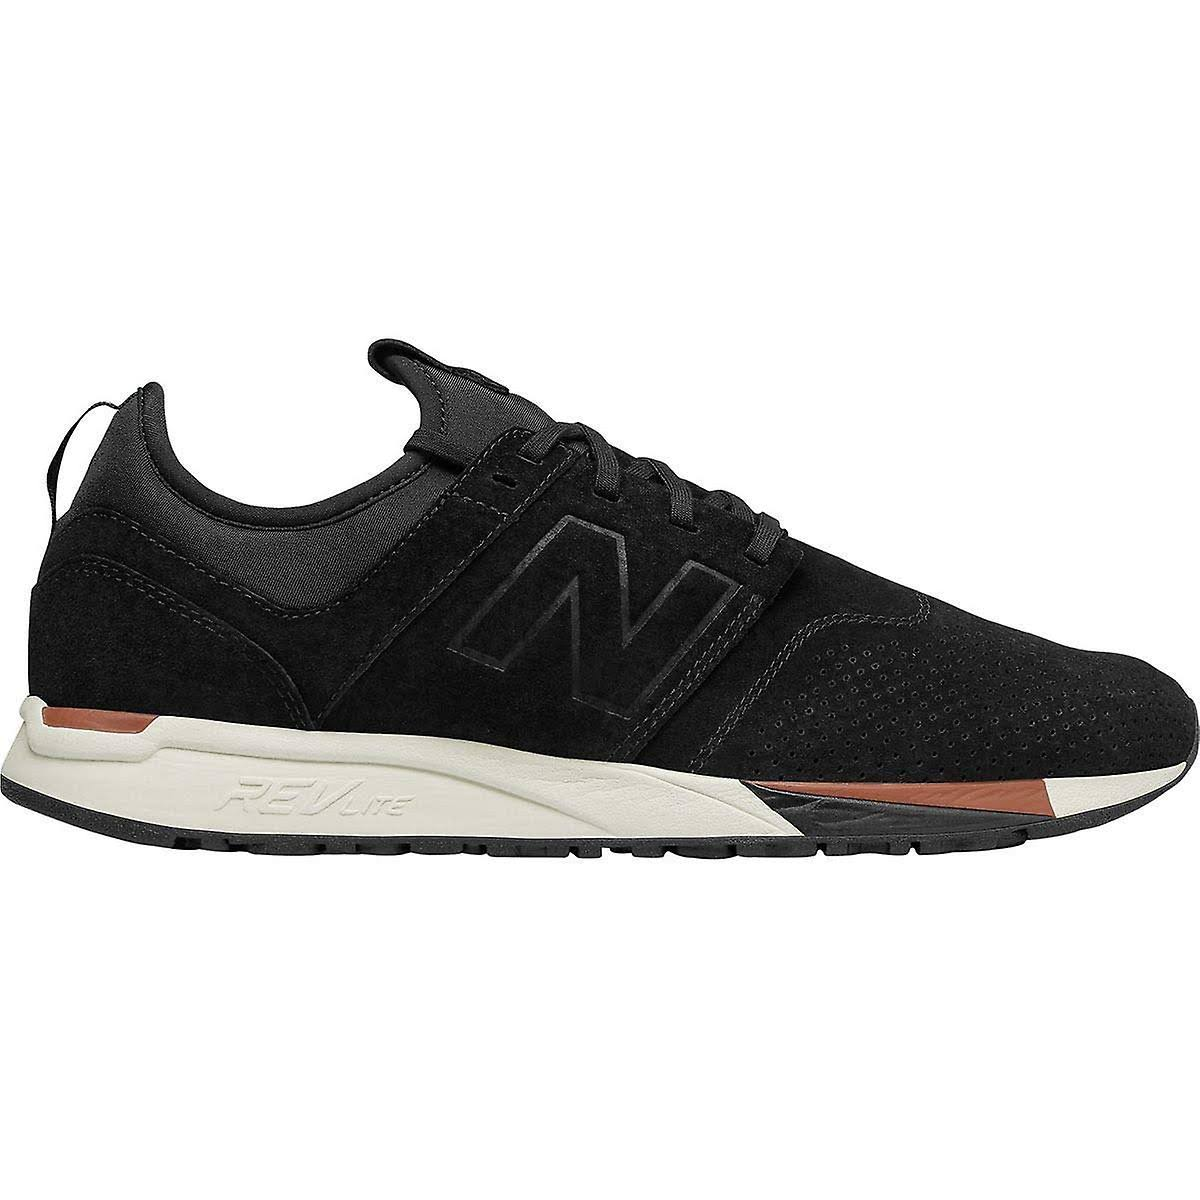 white 247 Black tan Balance Trainers 0 2 Suede Black New Luxe z45qXvXw